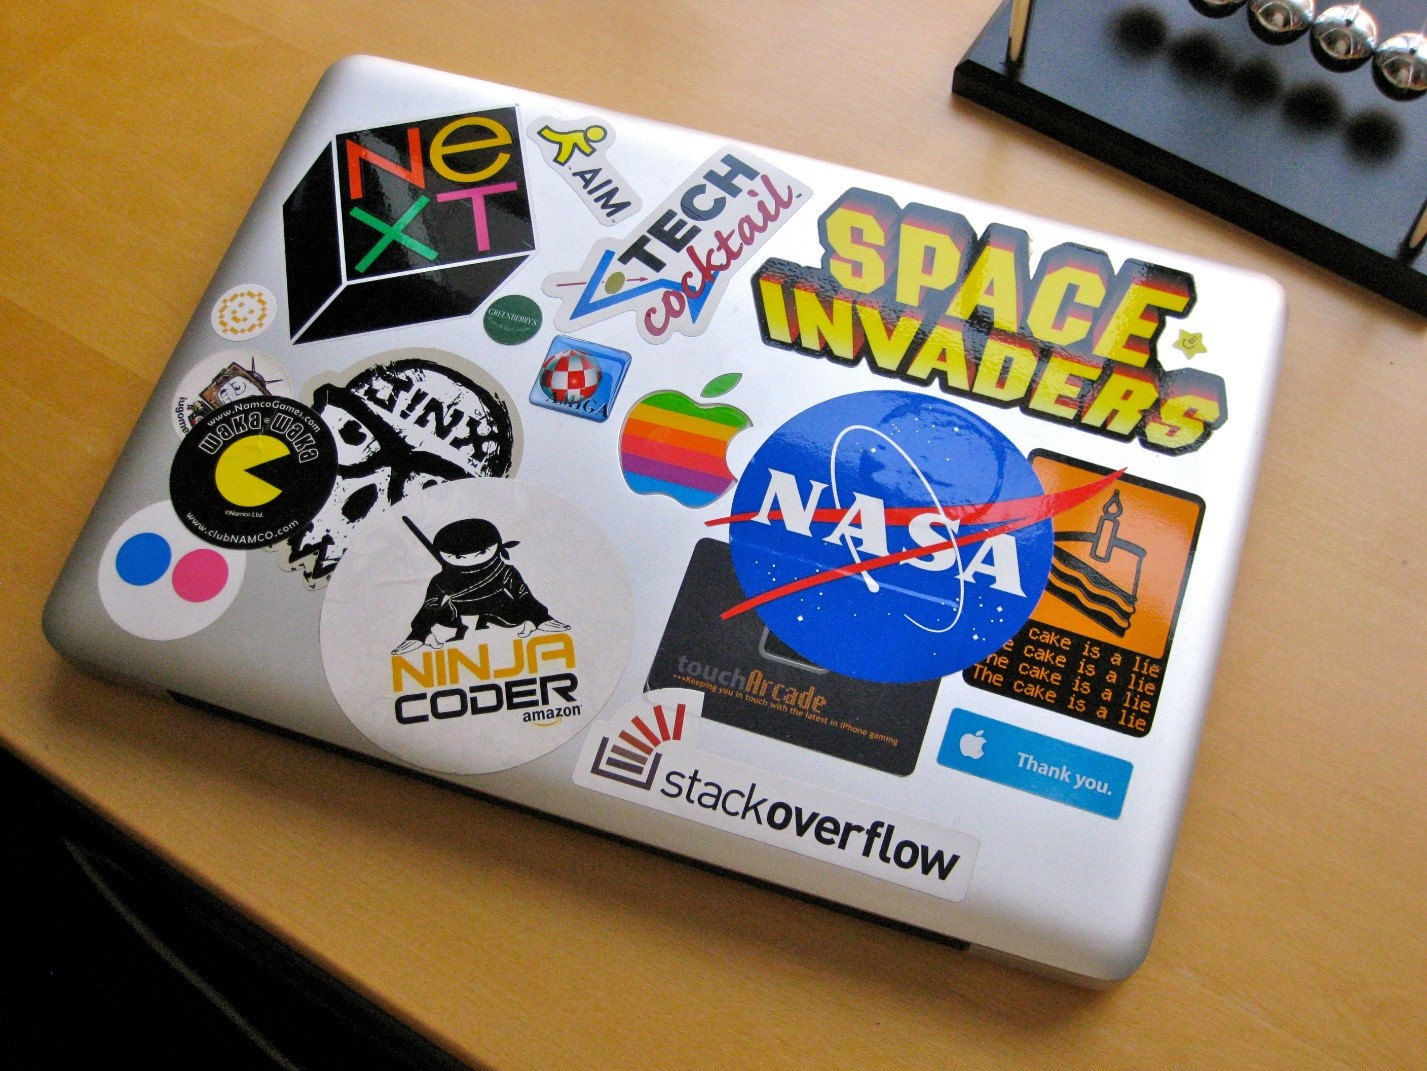 Sticker di diverse aziende sul retro di un laptop. Immagine: flickr/Blake Patterson [CC BY]